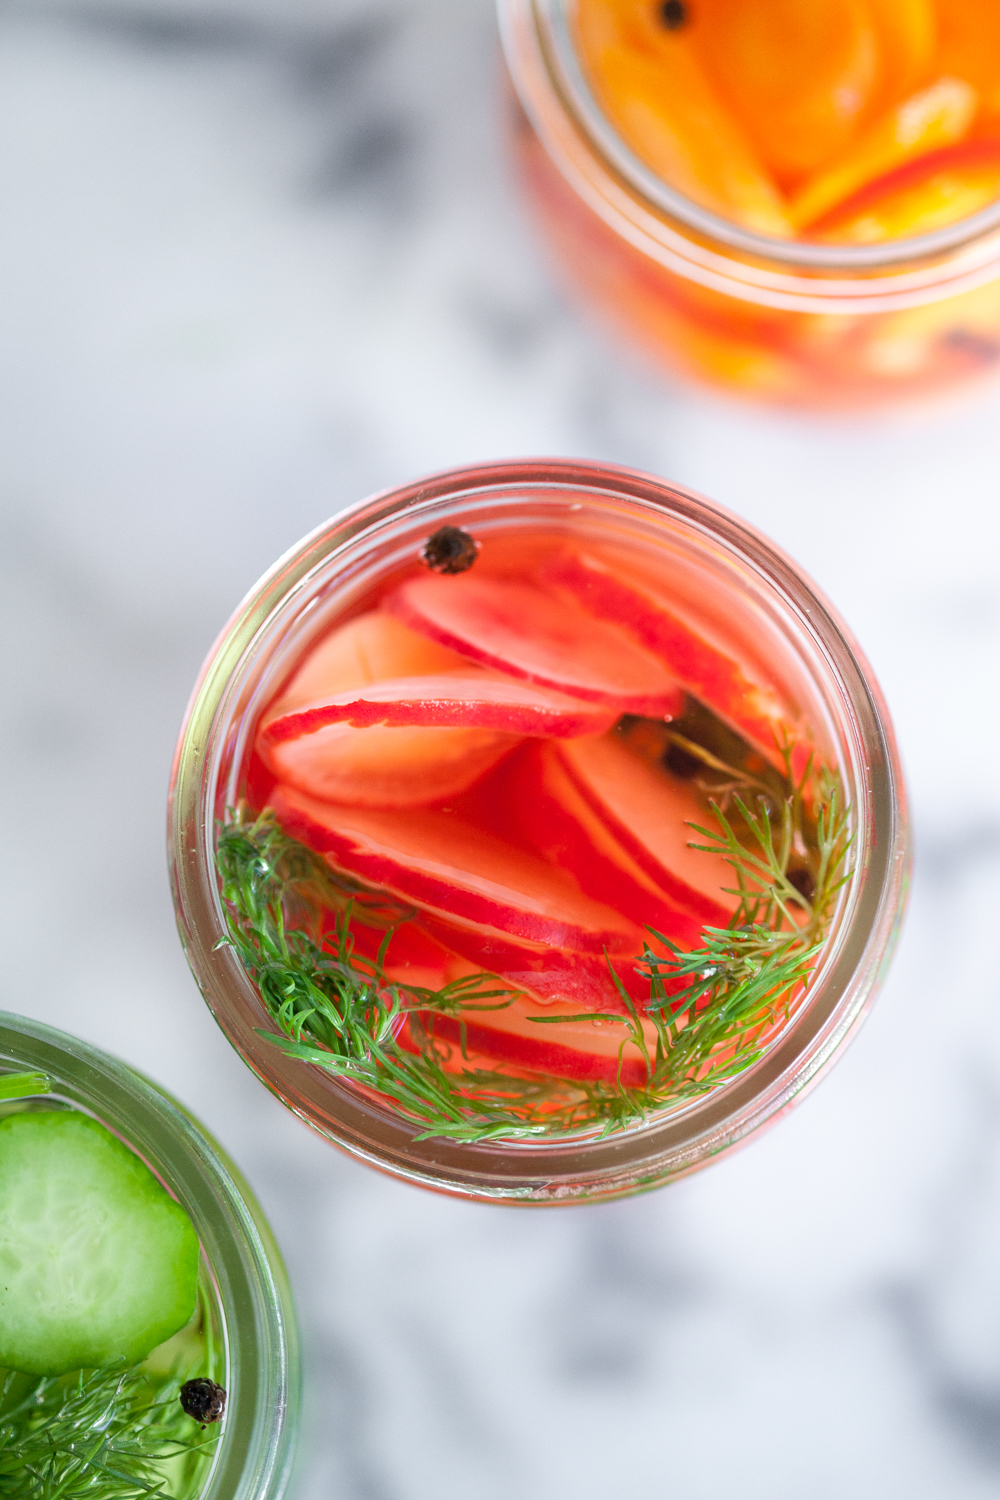 When quick pickling, just make sure the ingredients are full submerged in the vinegar before screwing on the cap.